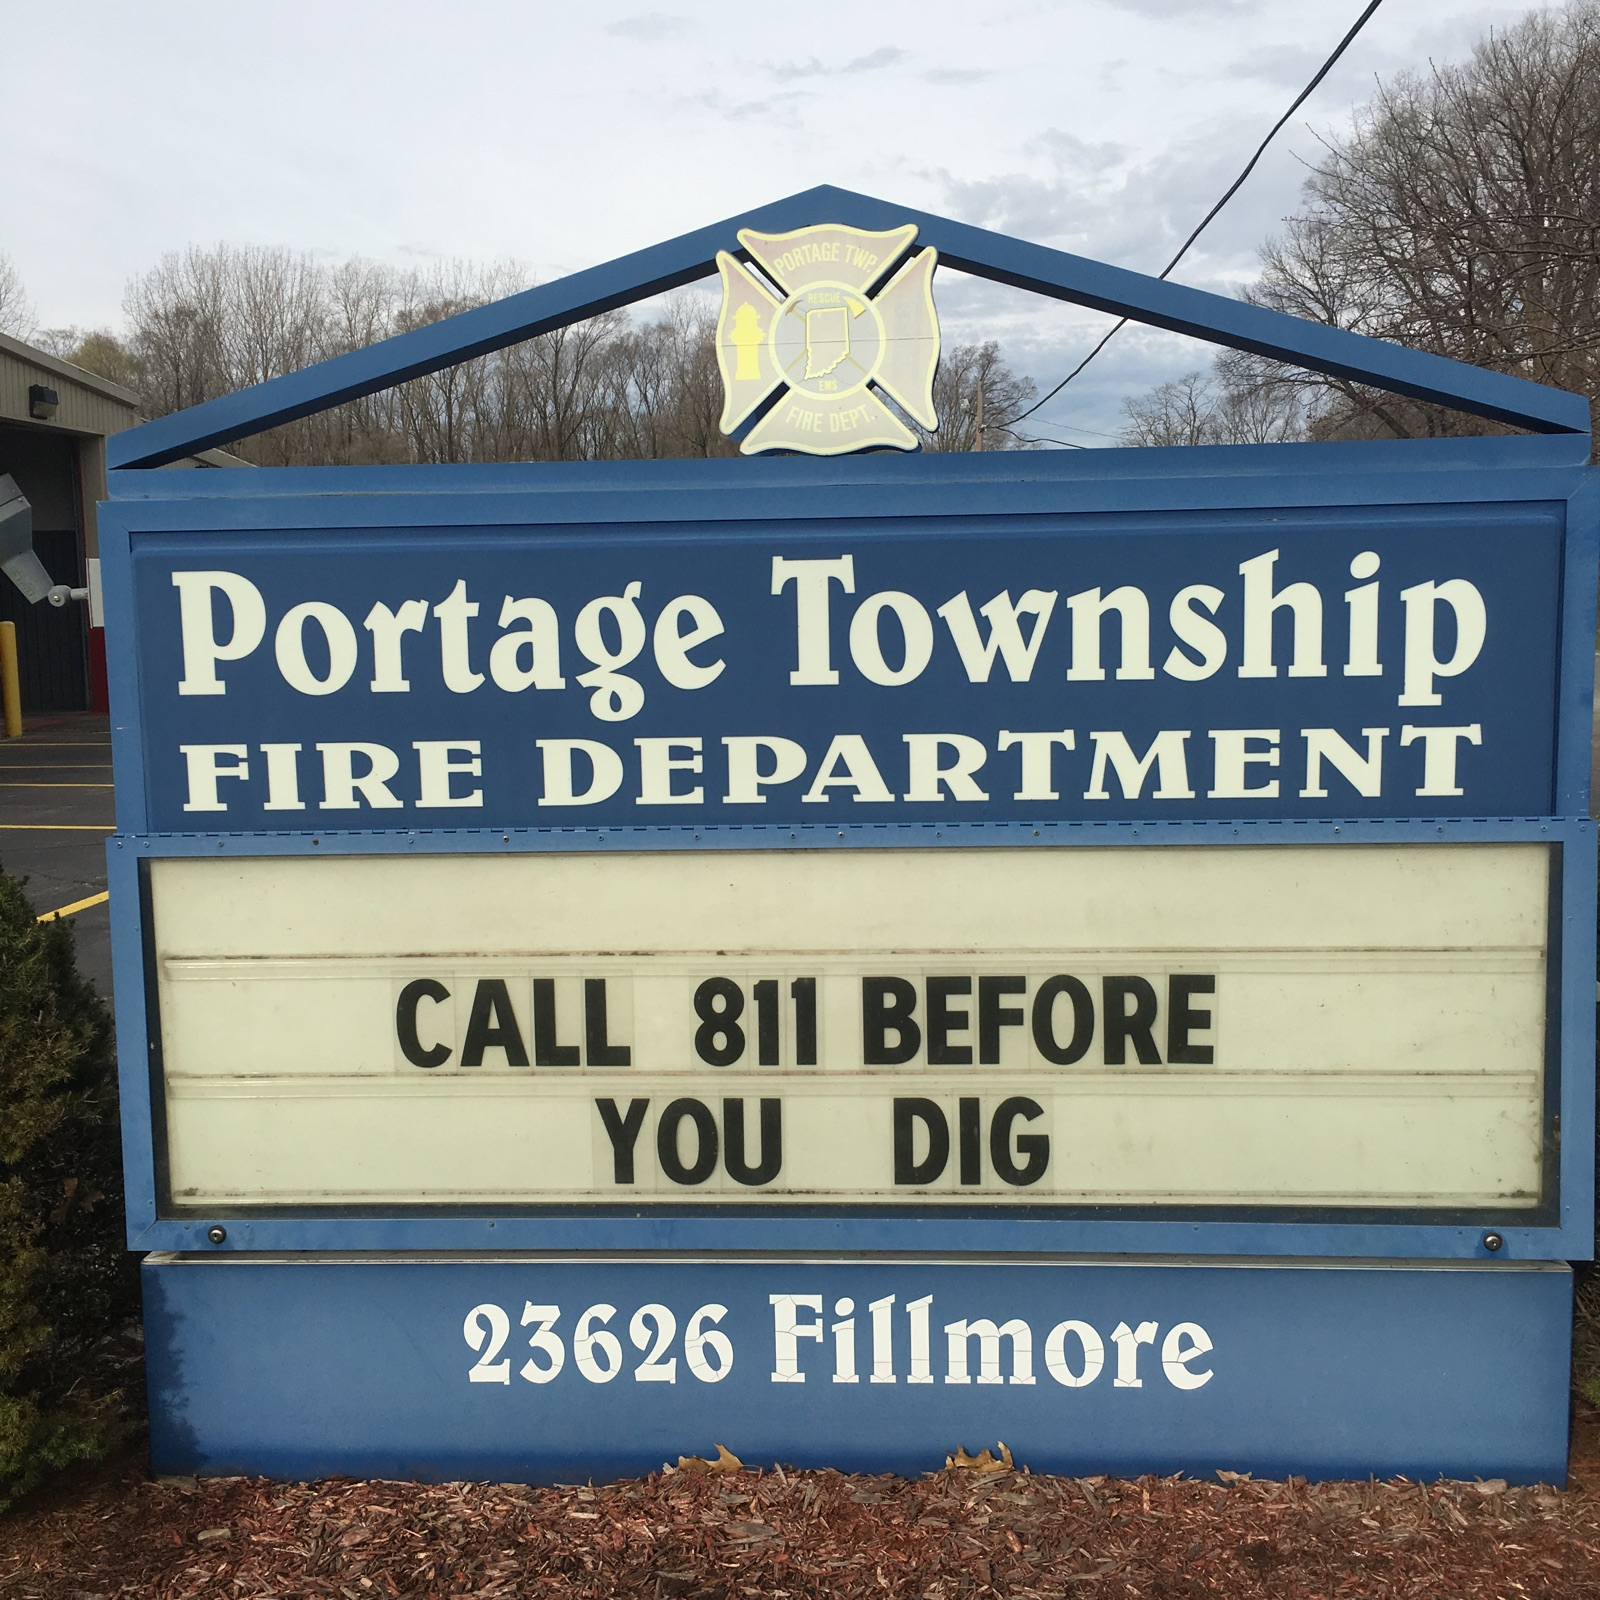 Portage Township Fire Department